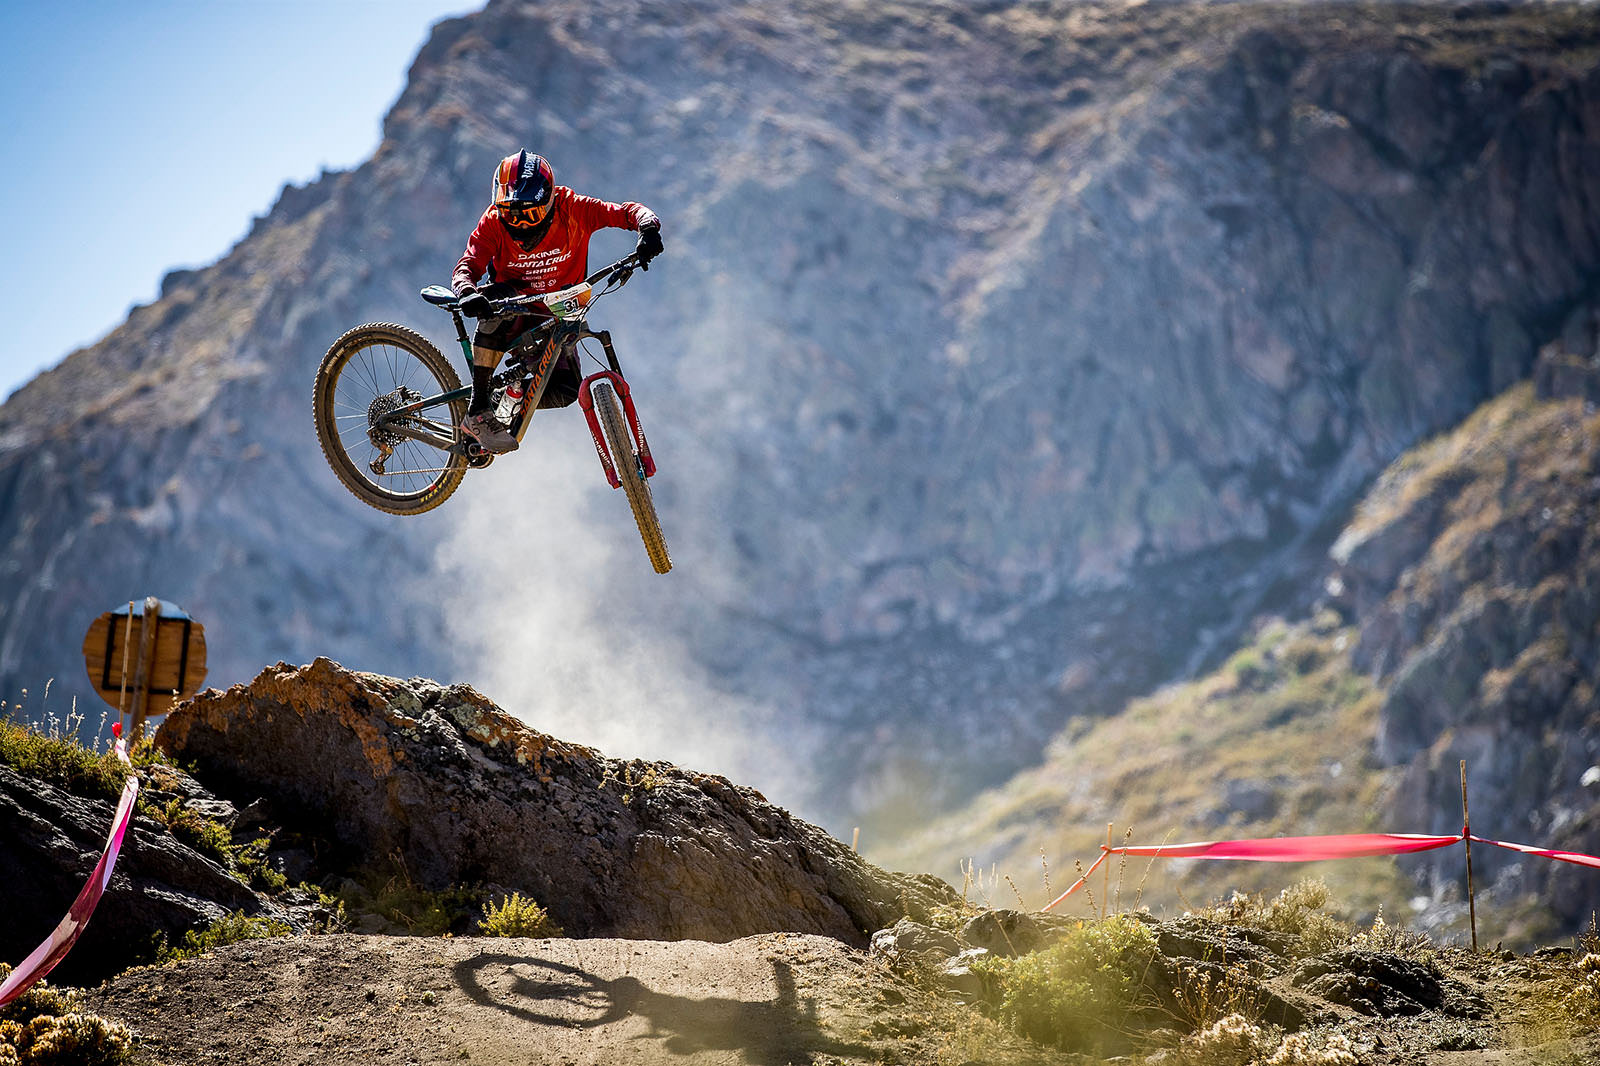 Santa Cruz Bicycles - Iago Garay of Santa Cru X SRAM Enduro Team Making It Look Easy in Chile